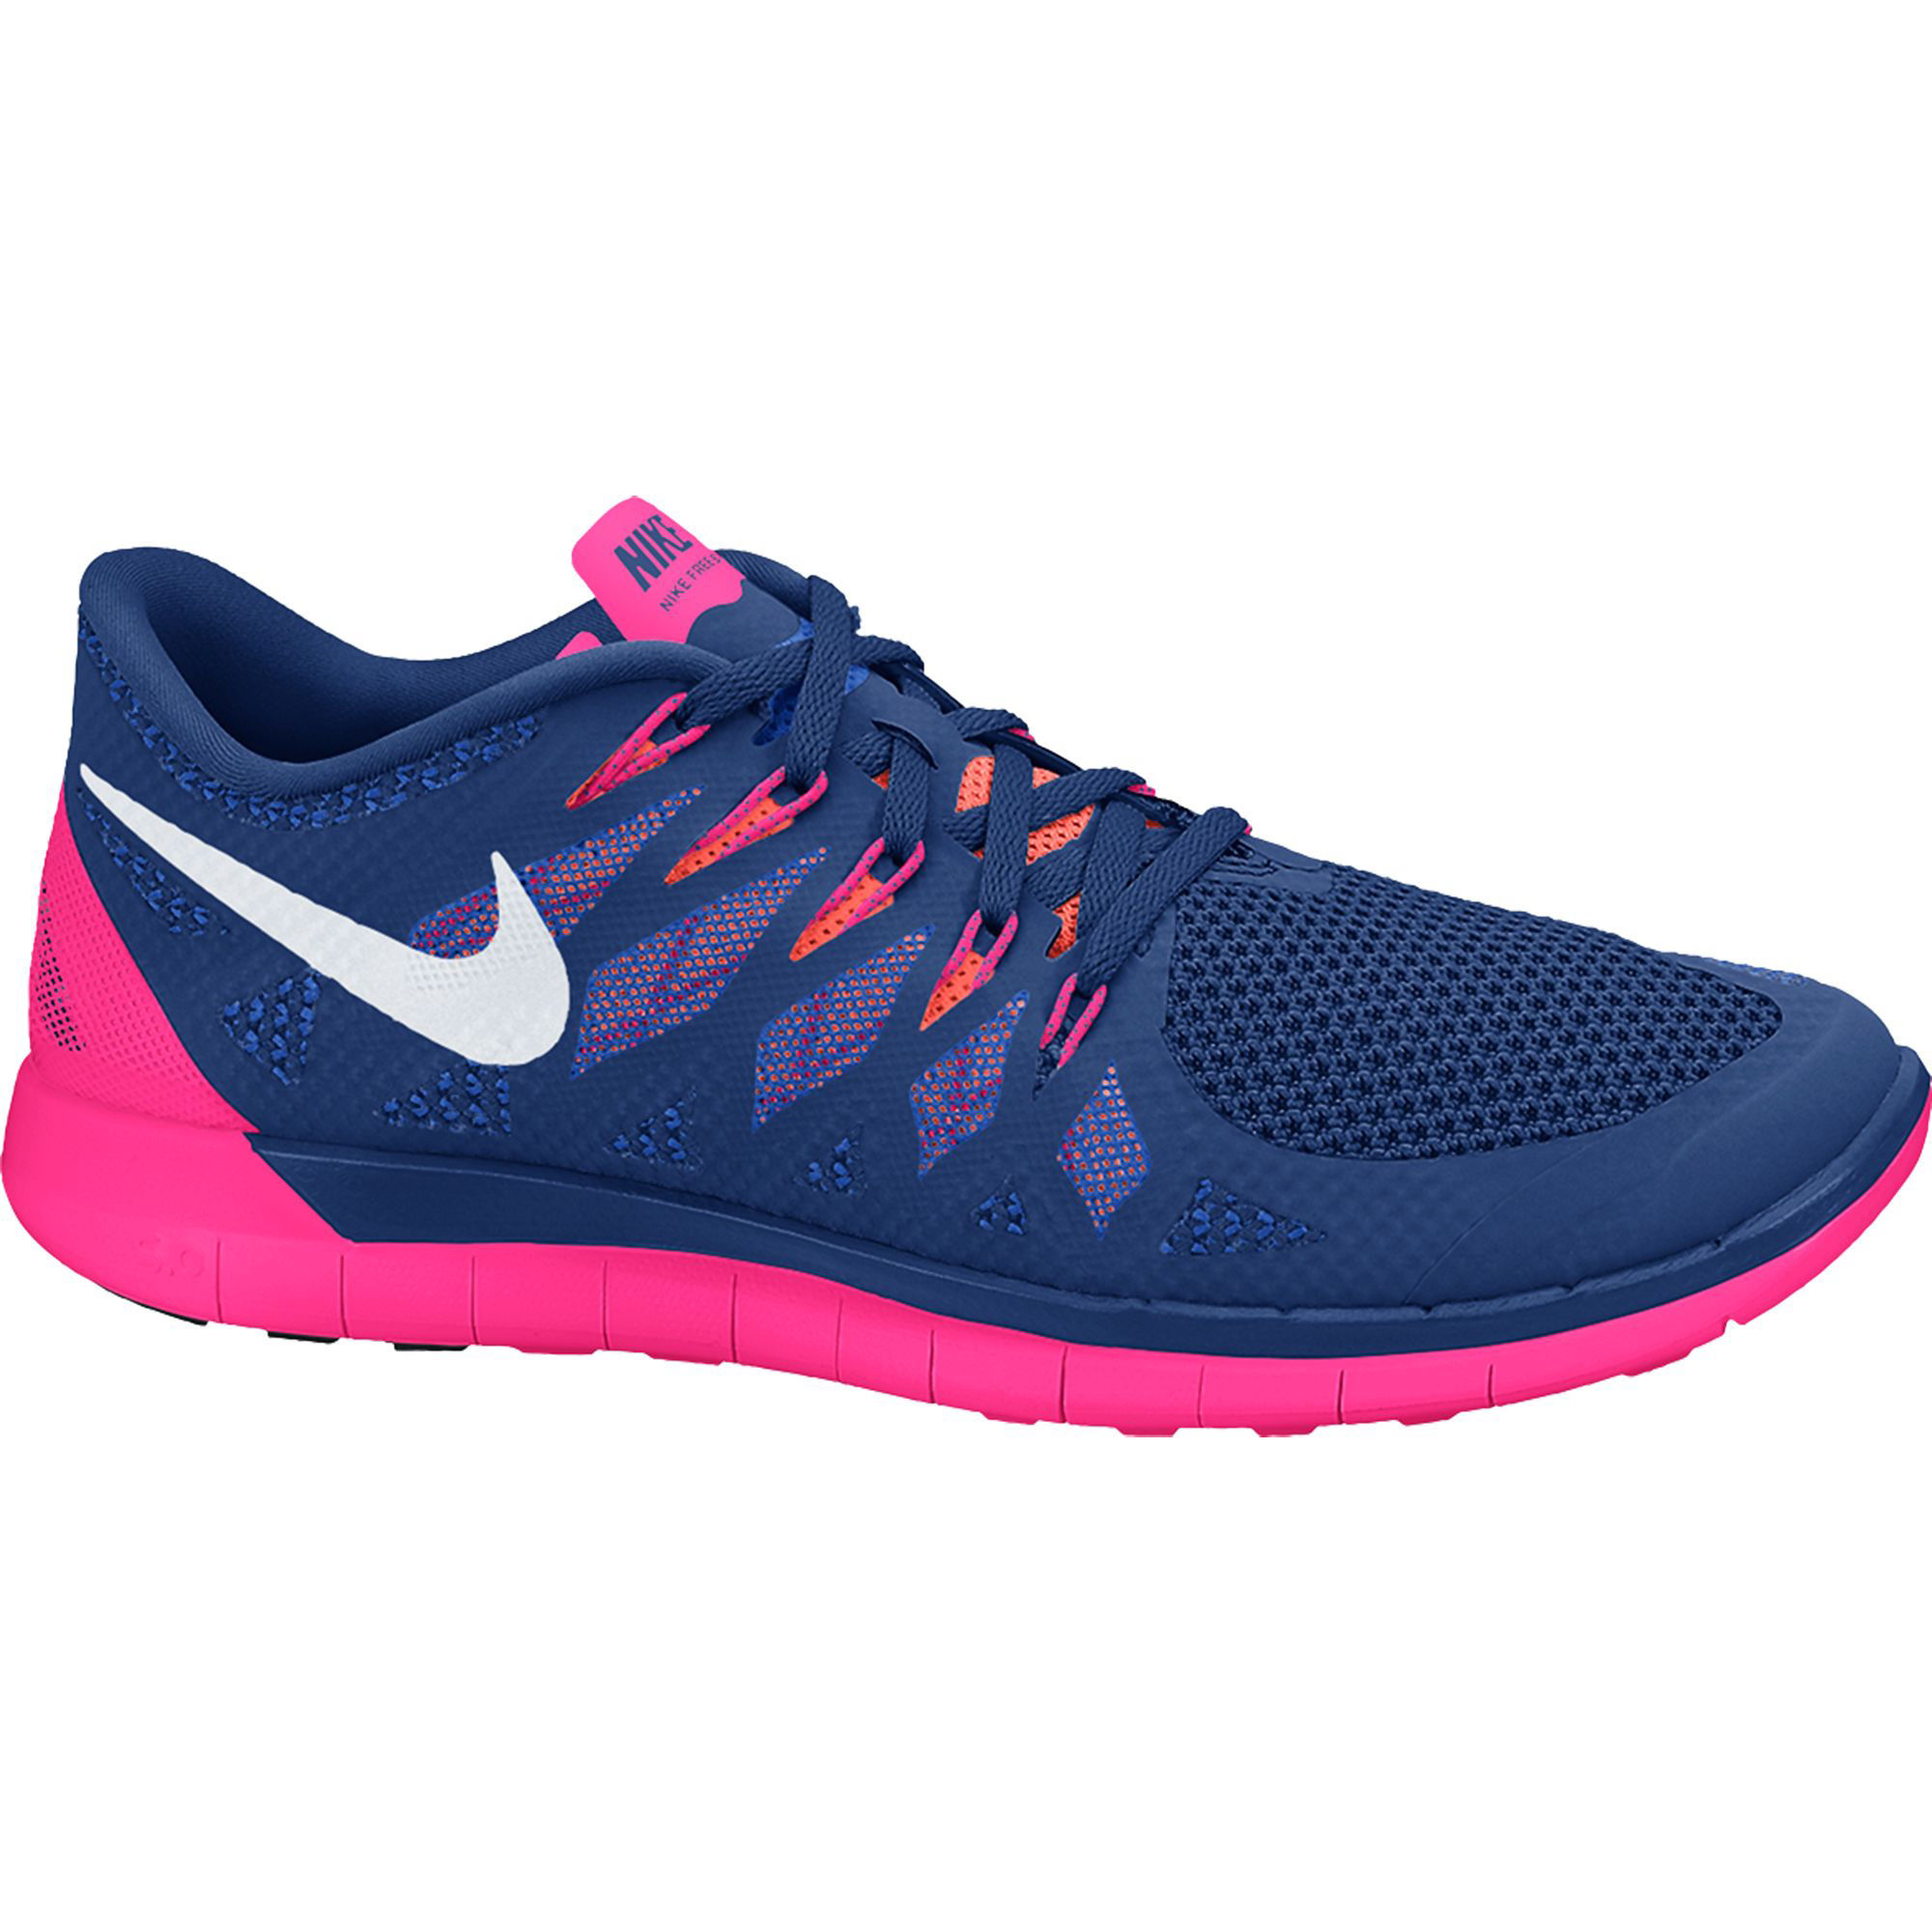 free 5.0 running shoe women